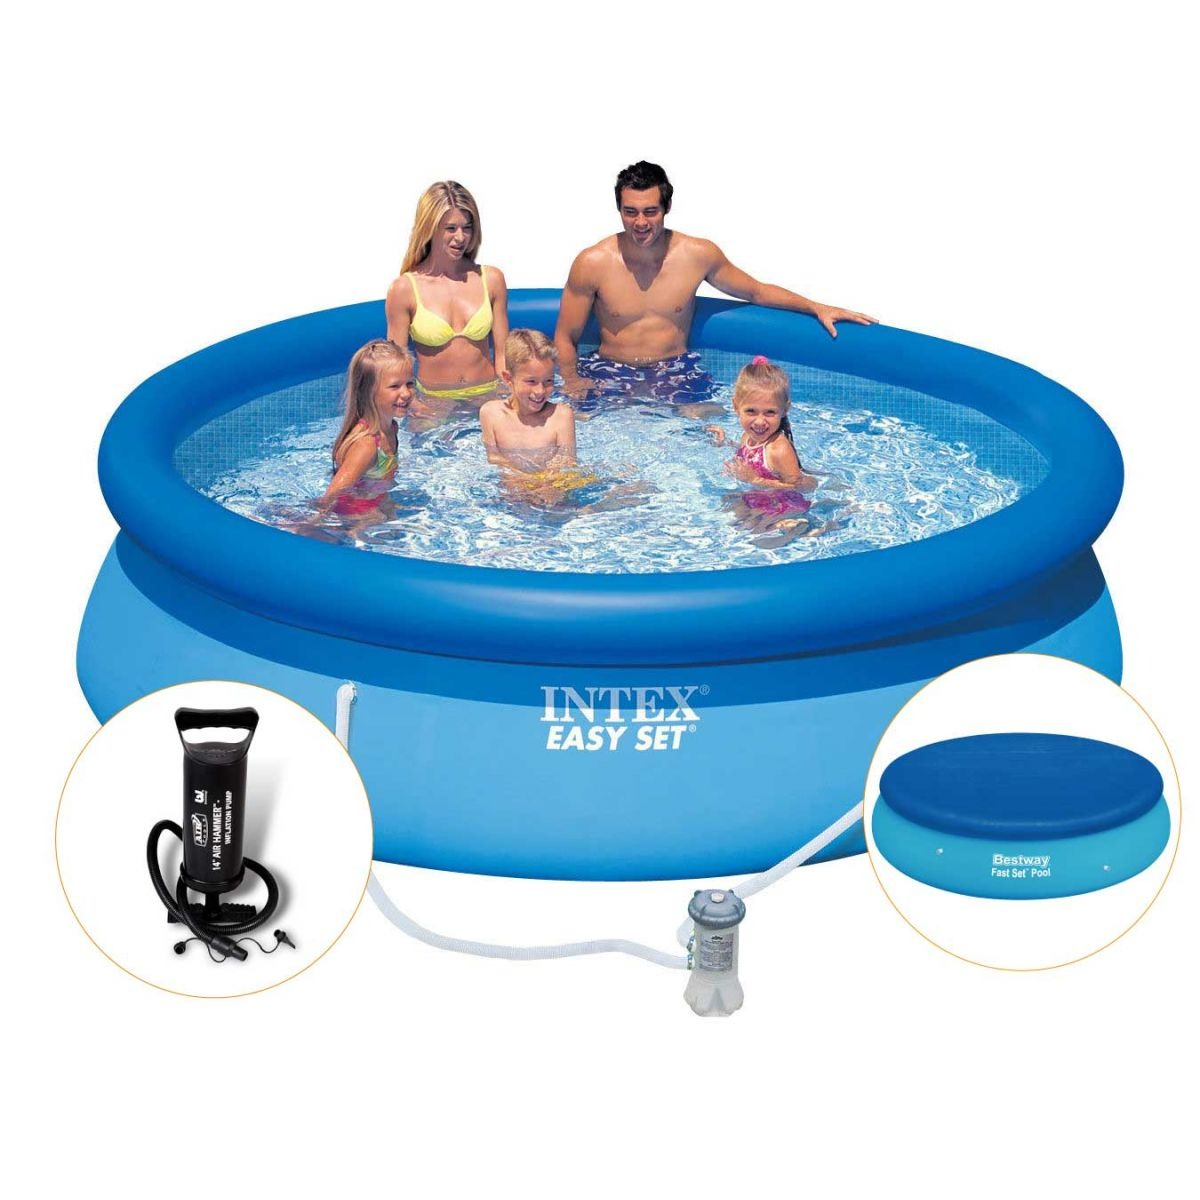 Capa De Piscina Intex Piscina Intex Inflavel 3 853 Litros Filtro Capa Bomba